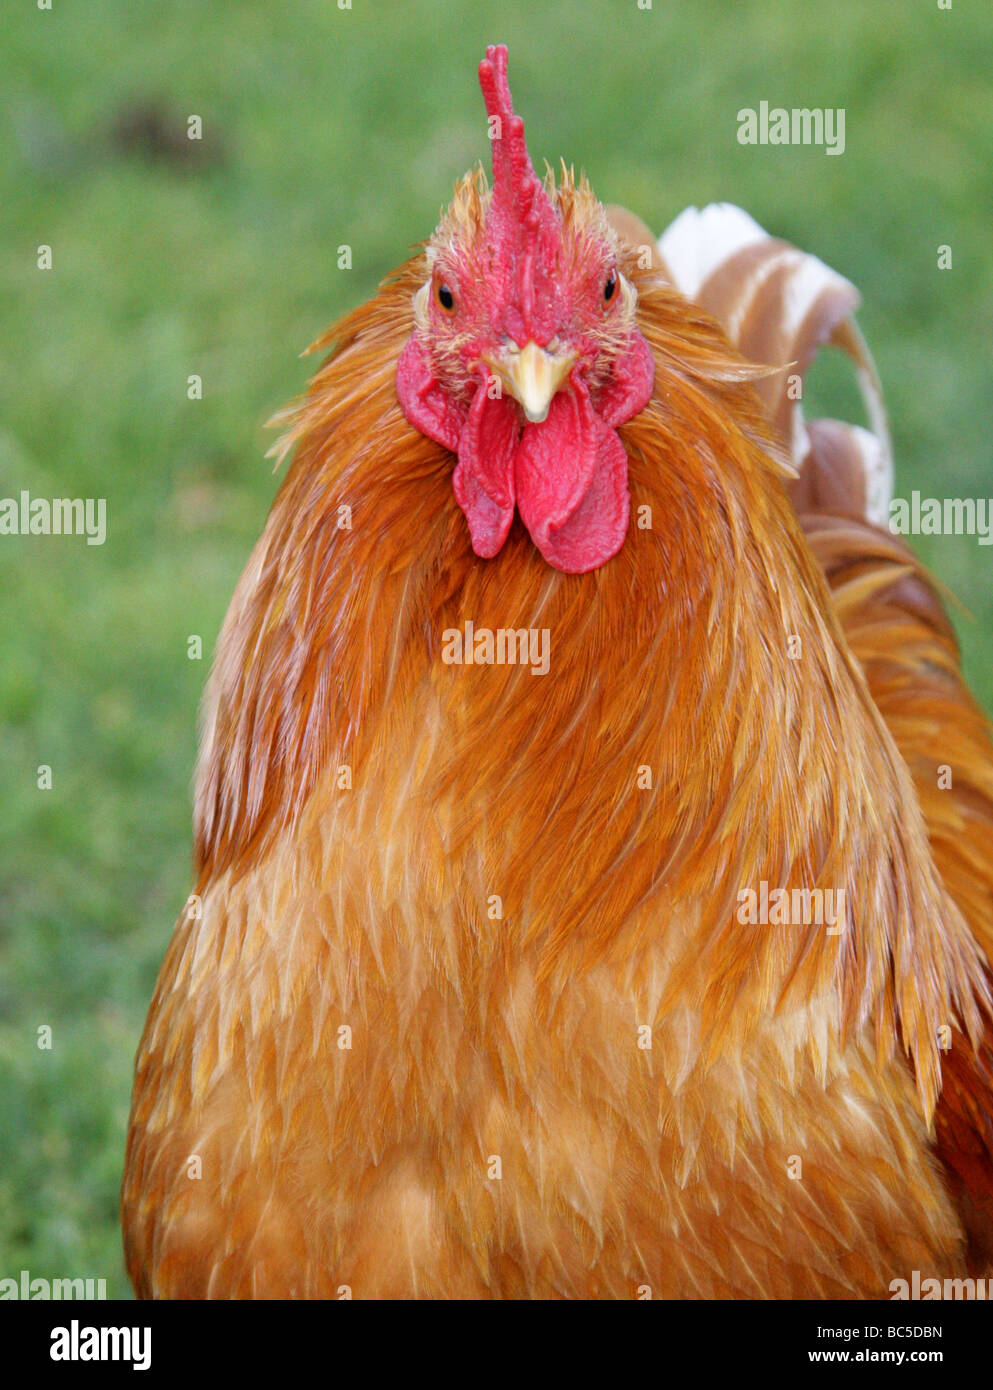 Domesticated Chicken, 'Orpington' Rooster, Gallus gallus domesticus, Phasianidae, Galliformes - Stock Image